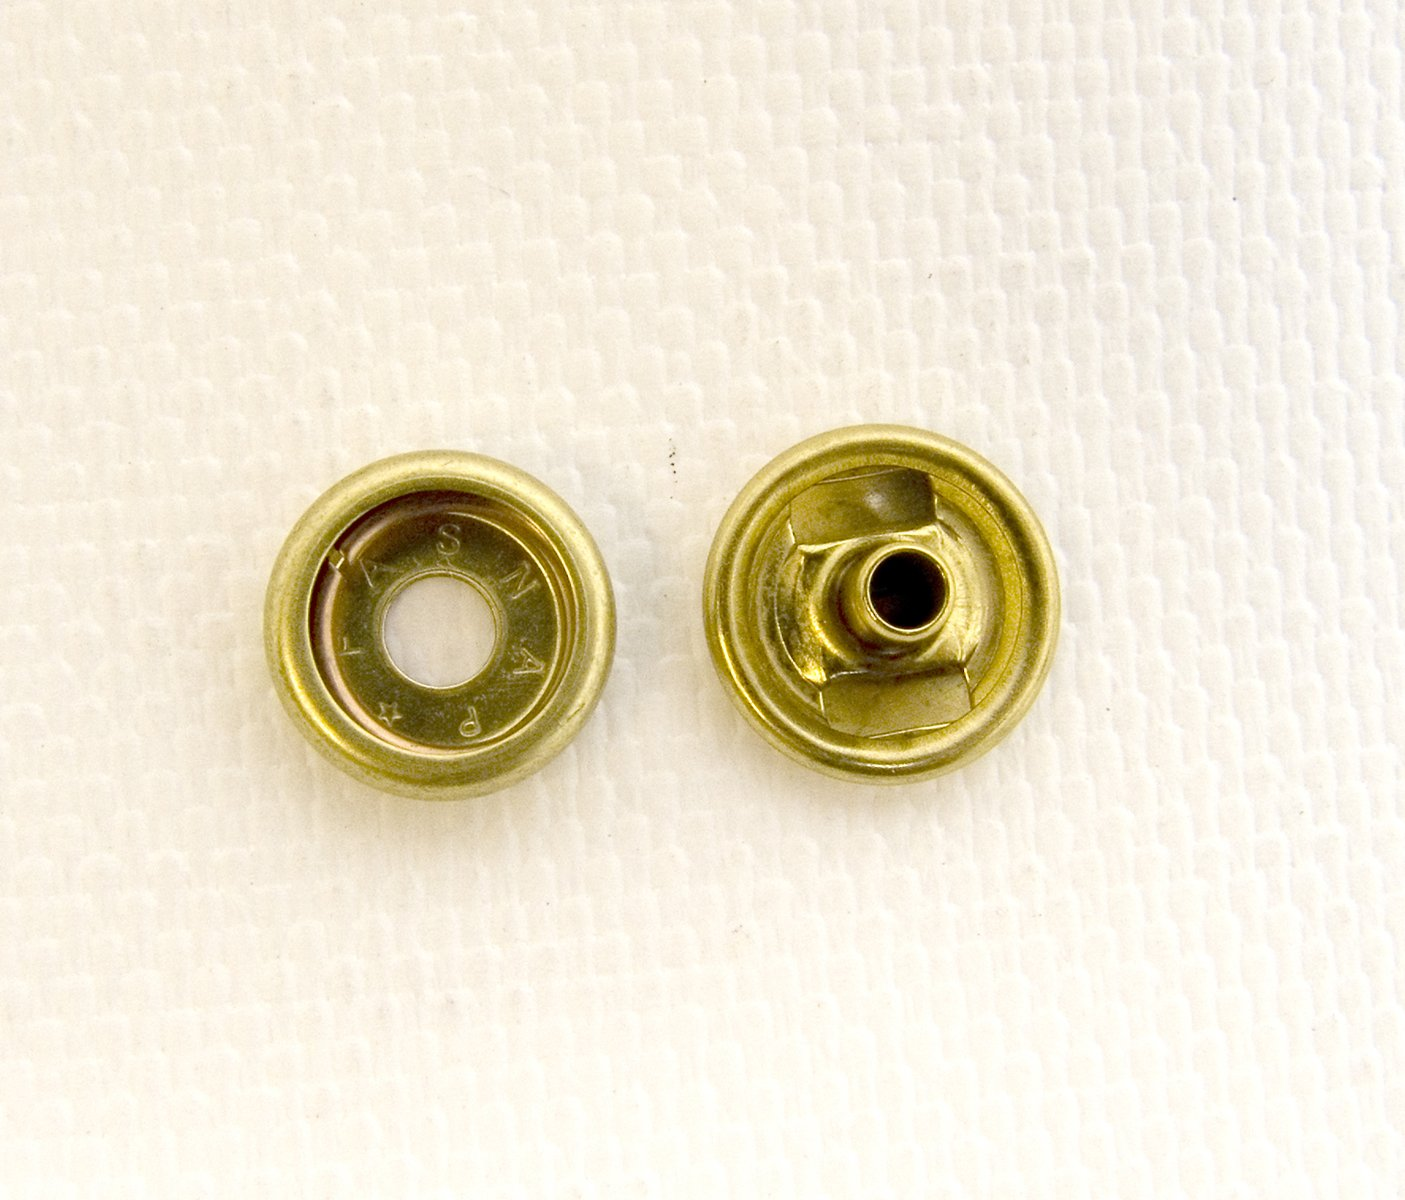 Snap Fastener, Cap & Socket Only, Solid Brass, 10 Piece Set - Shipped from The USA!